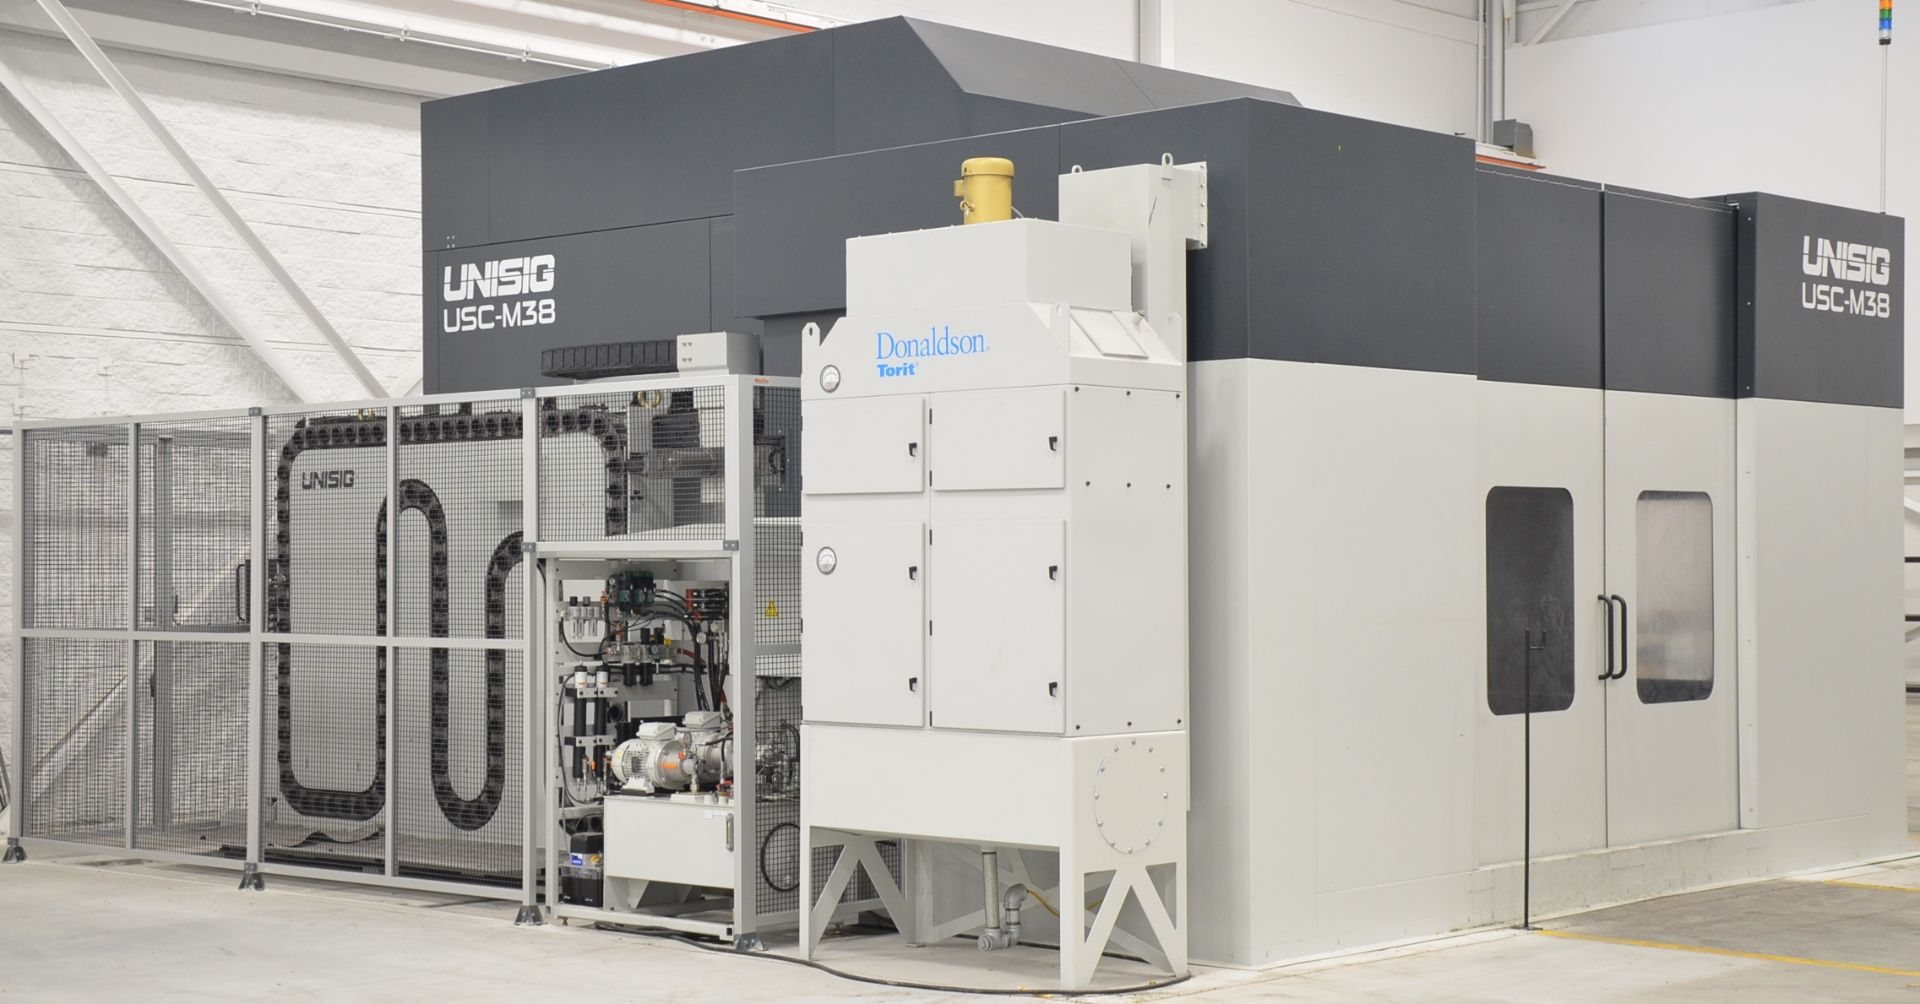 UNISIG (2020) USC-M38 5-AXIS COMBINATION CNC GUN DRILLING AND MILLING MACHINE WITH HEIDENHAIN ITNC - Image 2 of 17